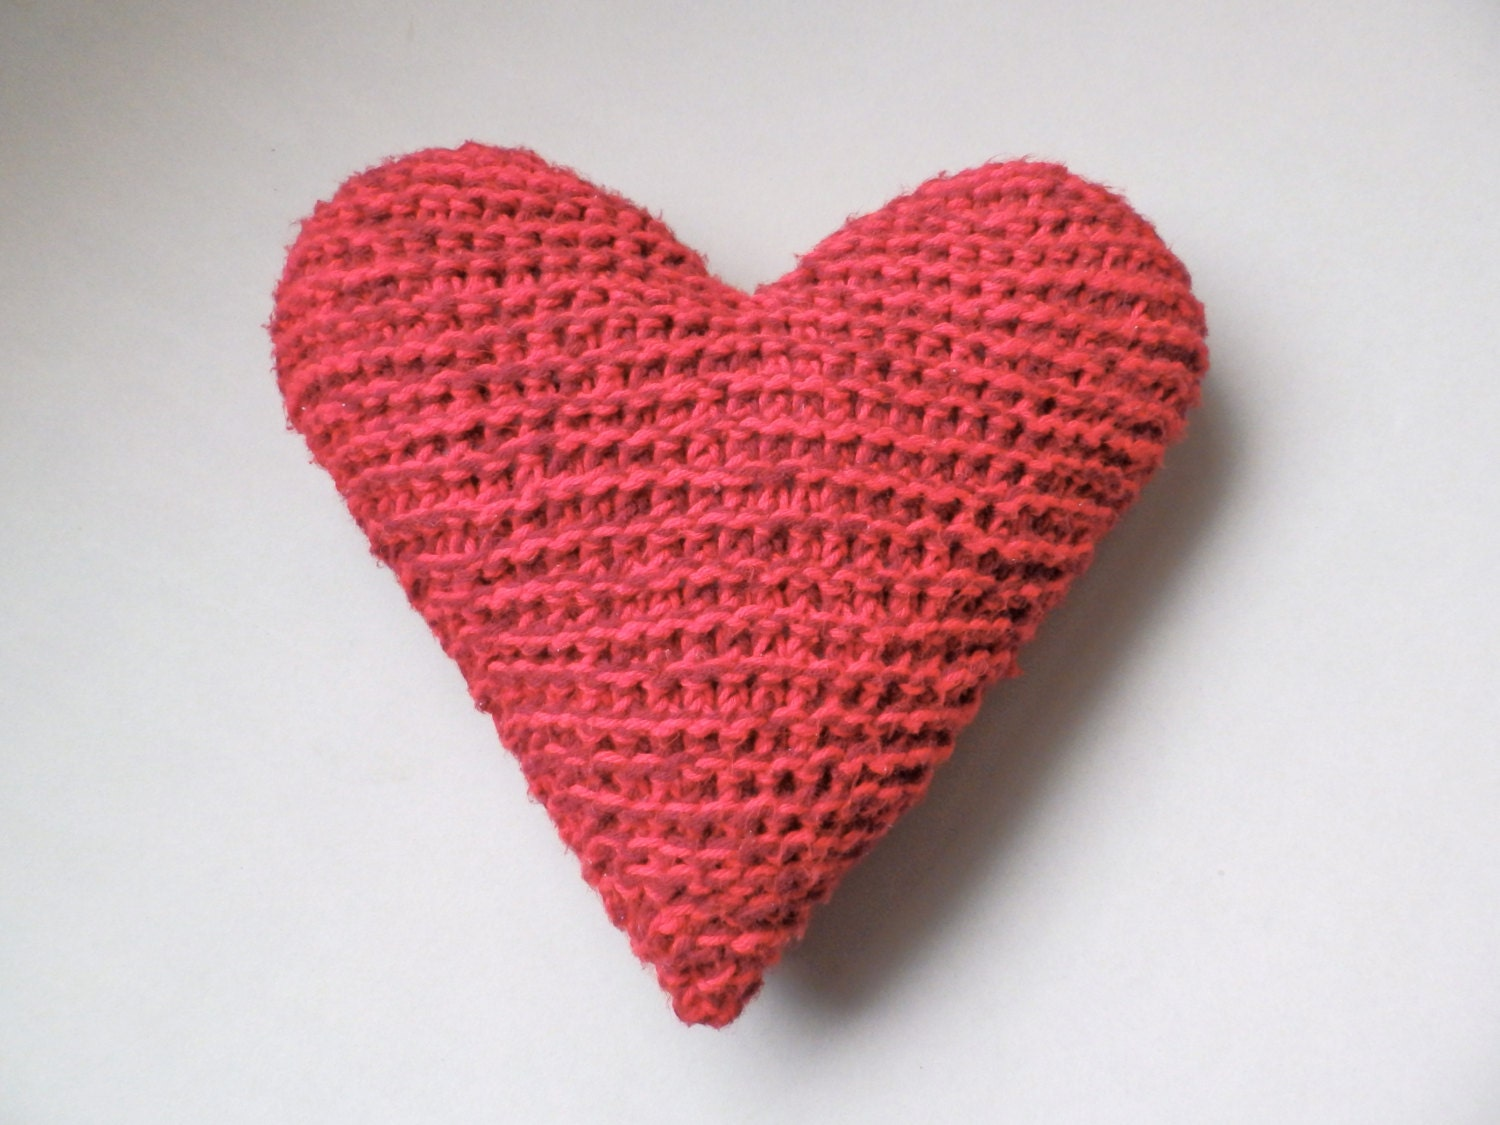 Heart Shaped Knitting Pattern : Knitted Heart Shaped Throw PIllow Handmade to Order custom